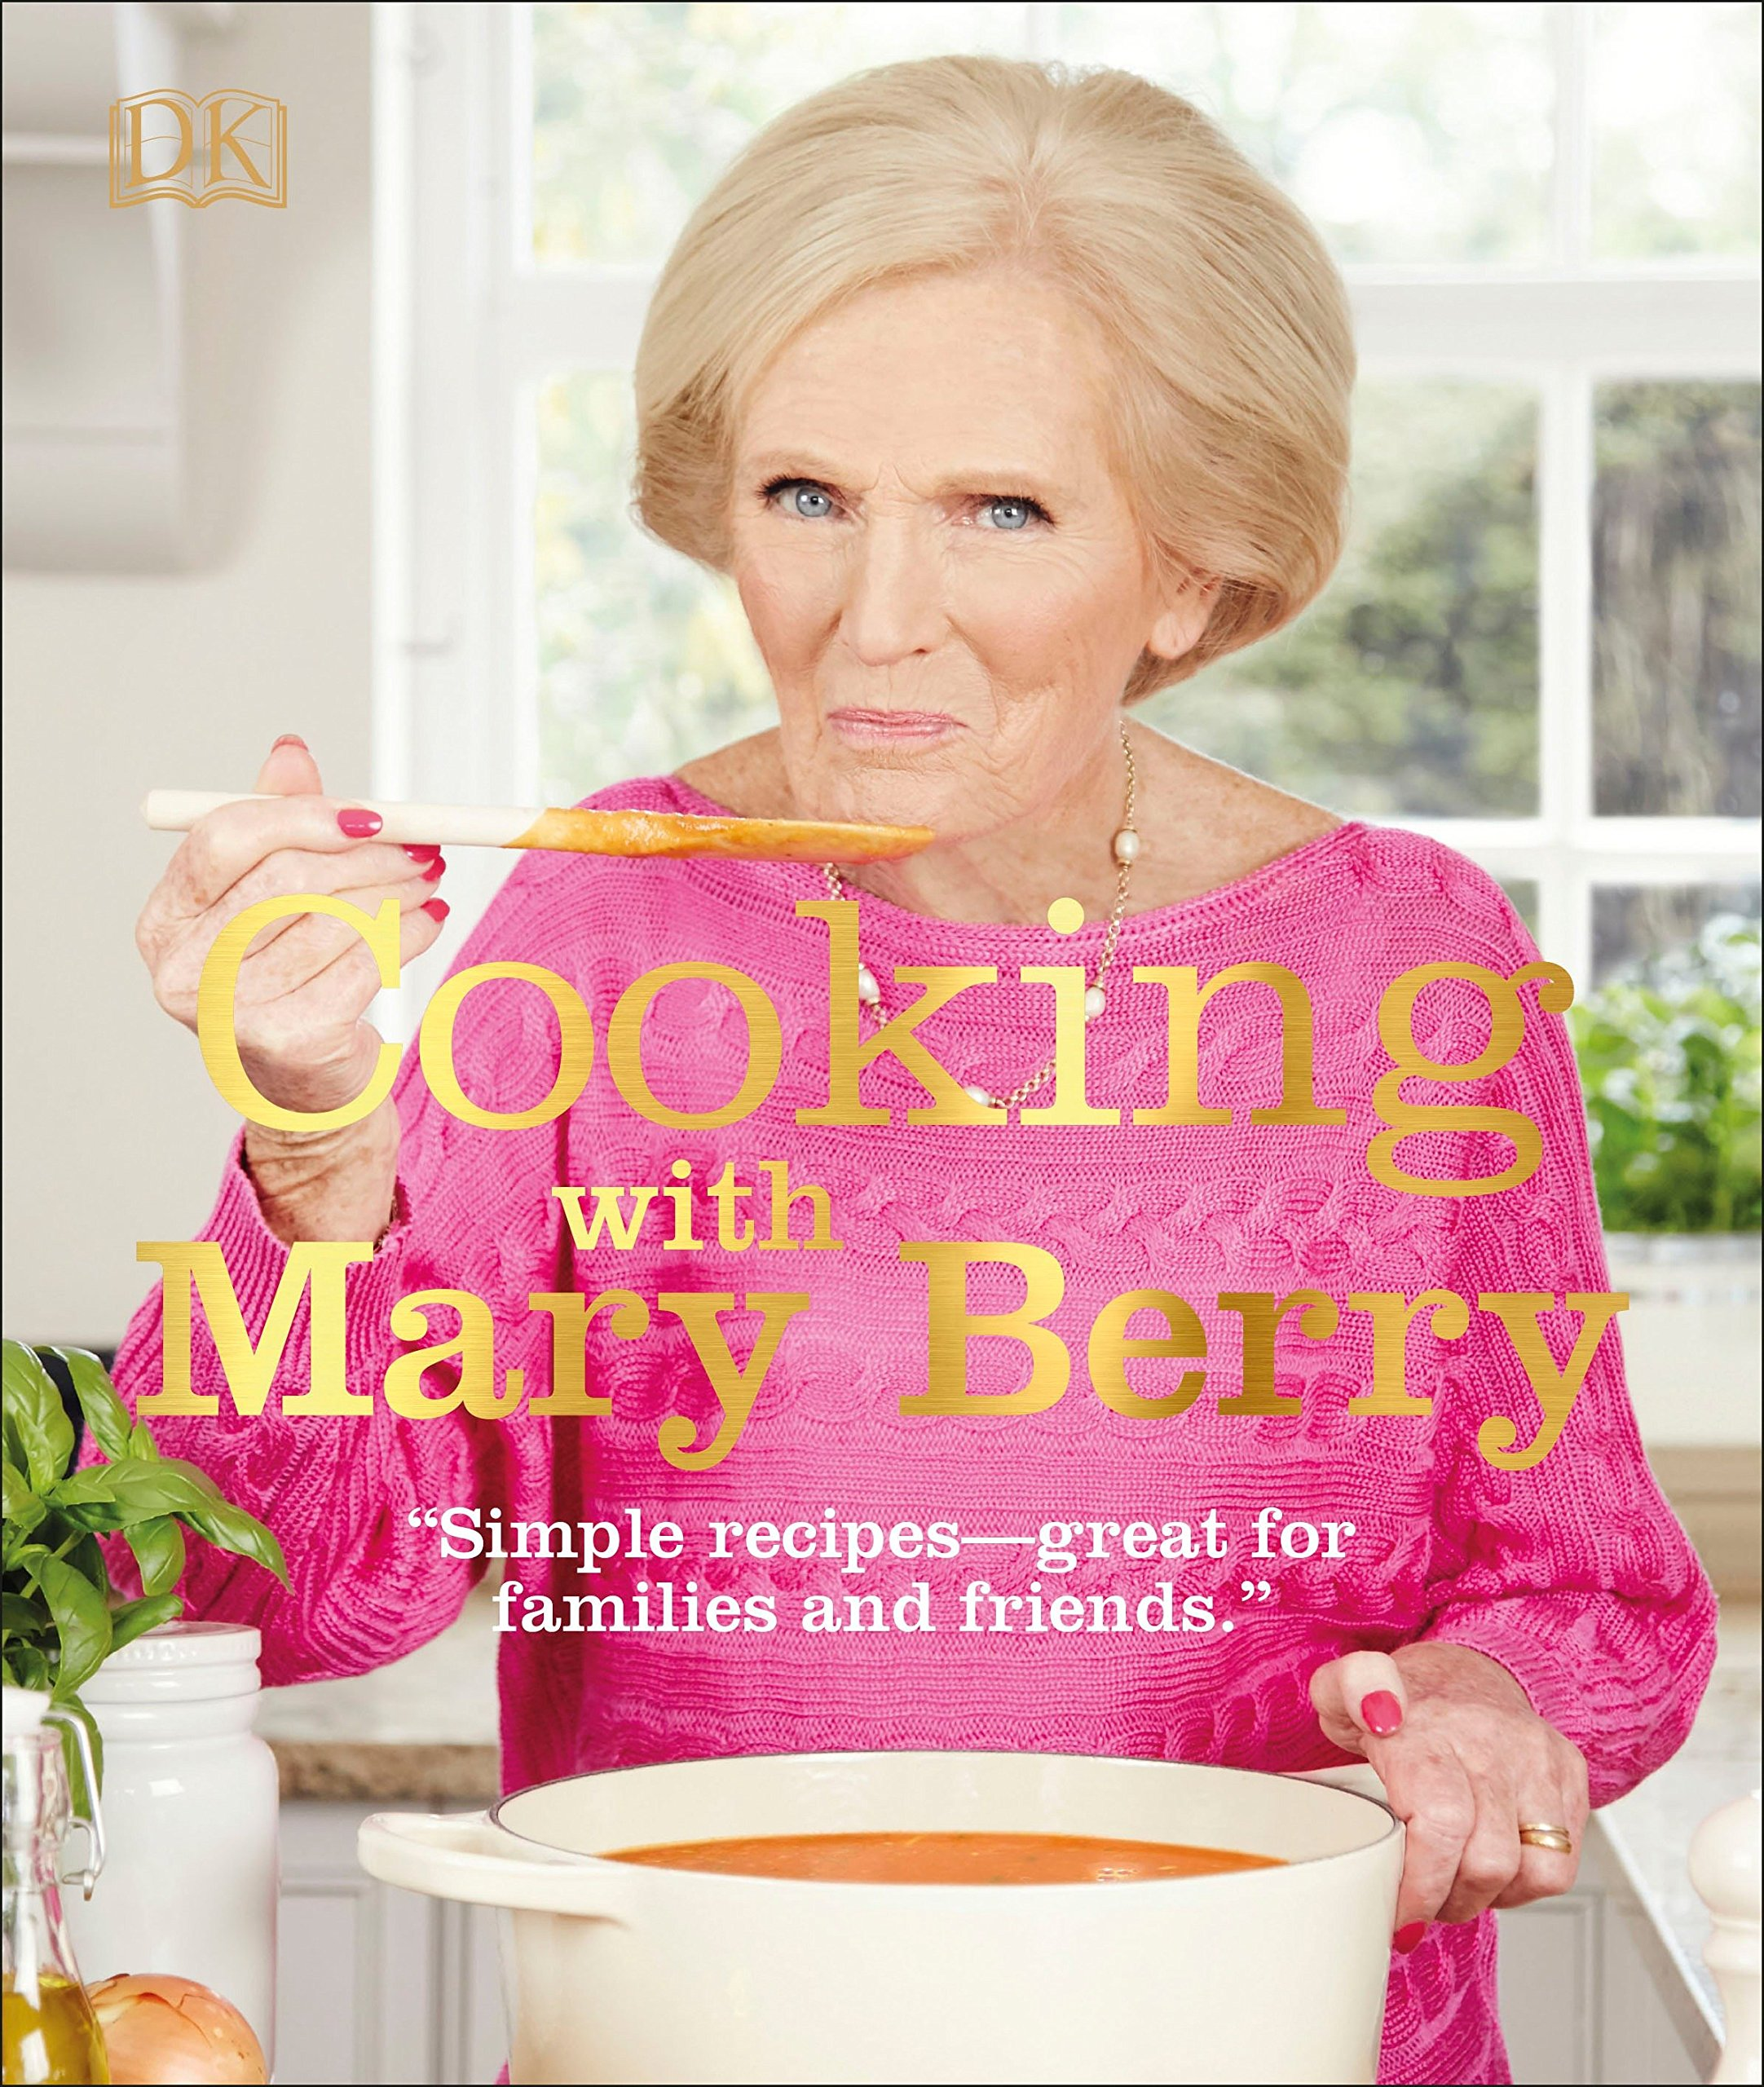 screw_the_average_city_guide_london_4_traditional_food_cookbook_marry_berry.jpg